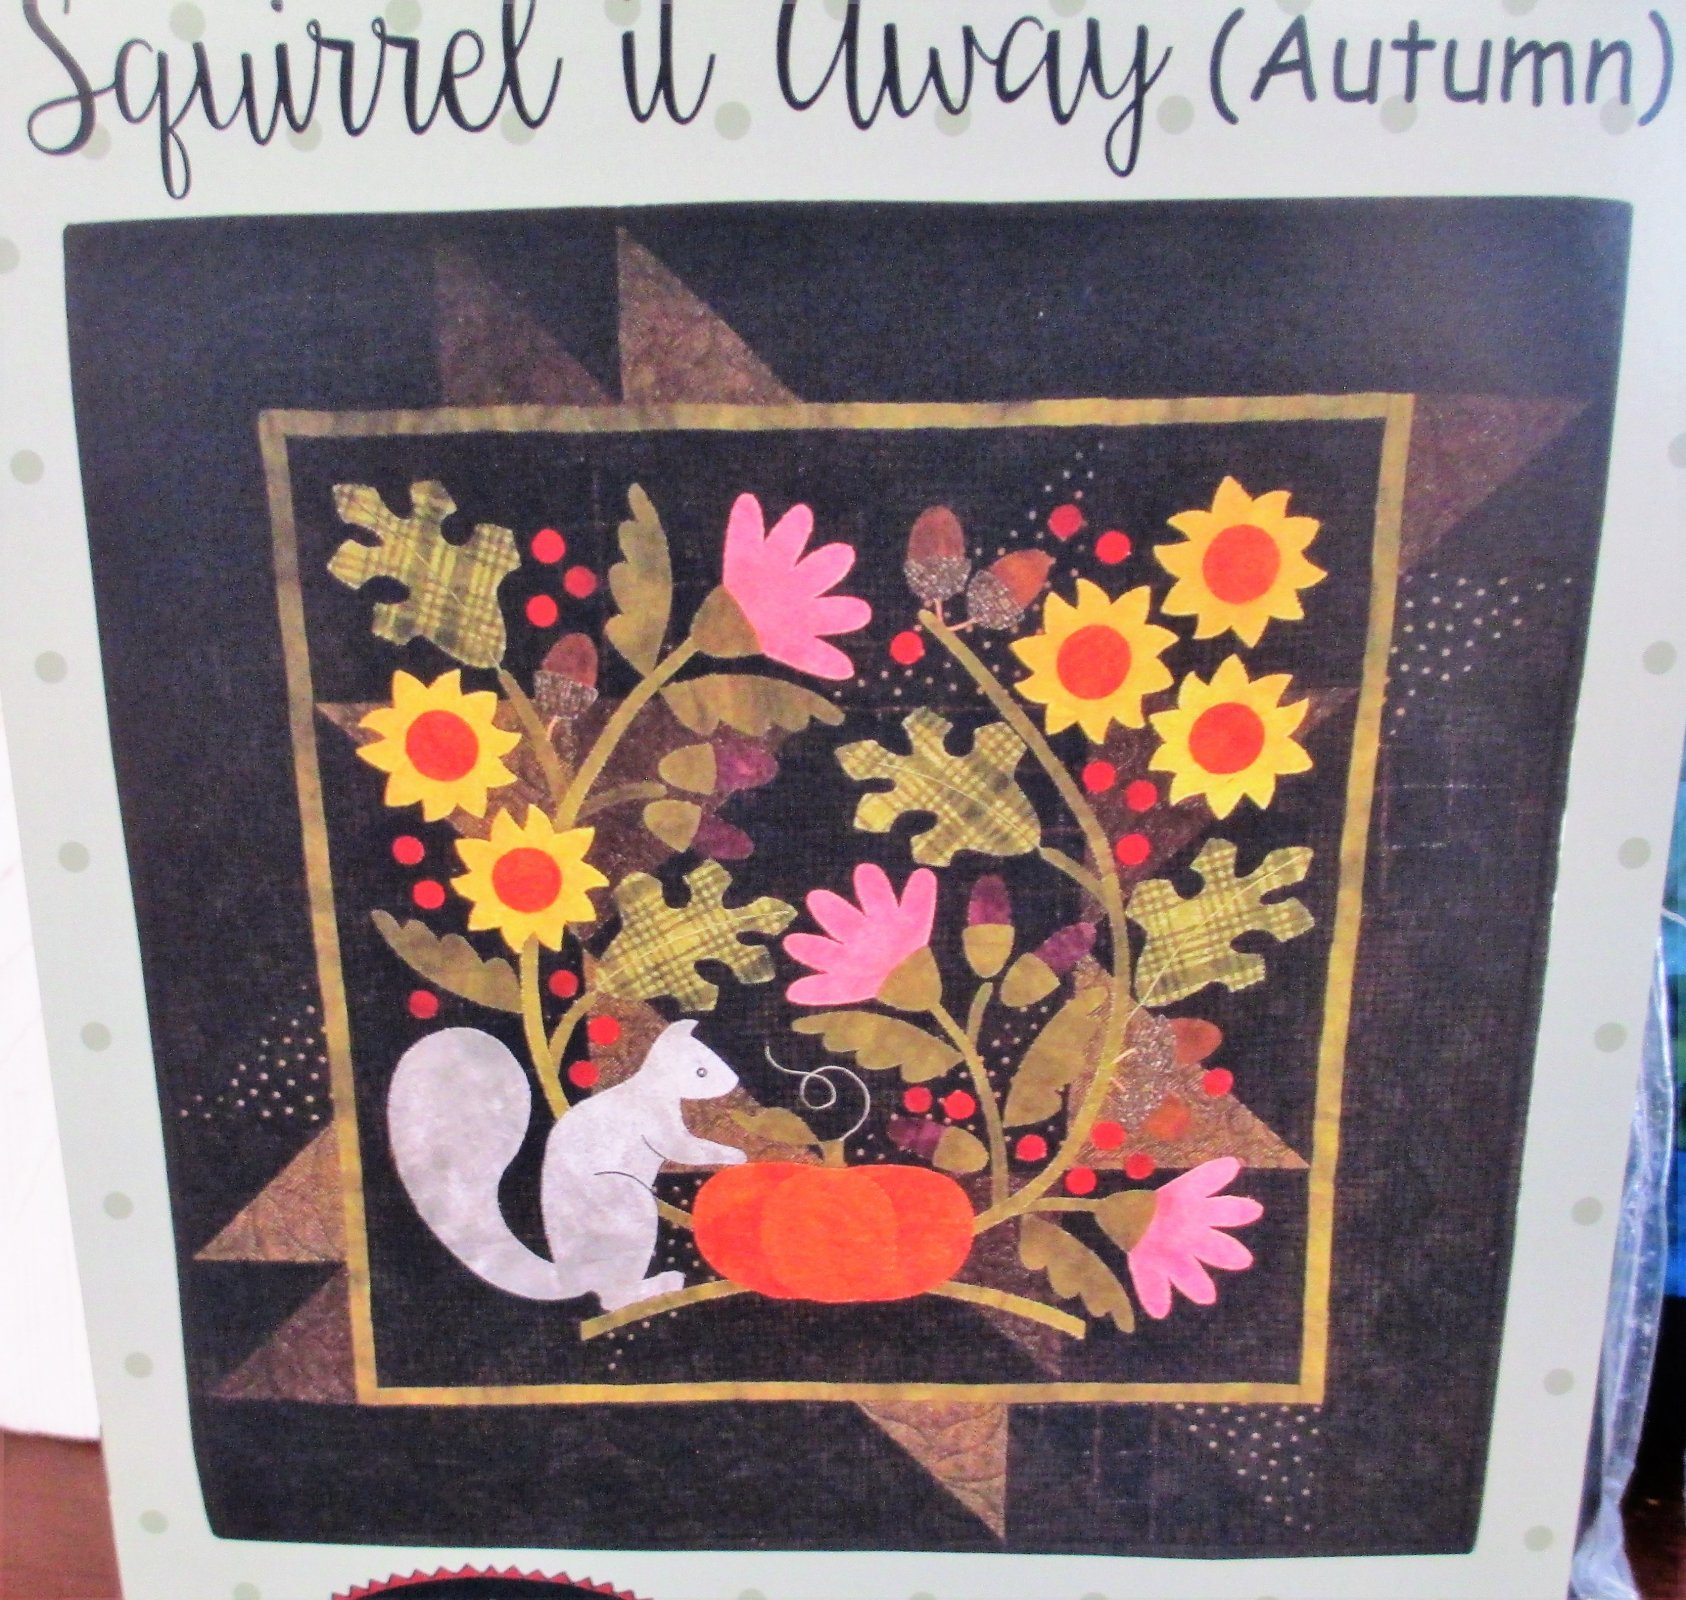 Squirrel It Away (Autumn)  kit - 120.00